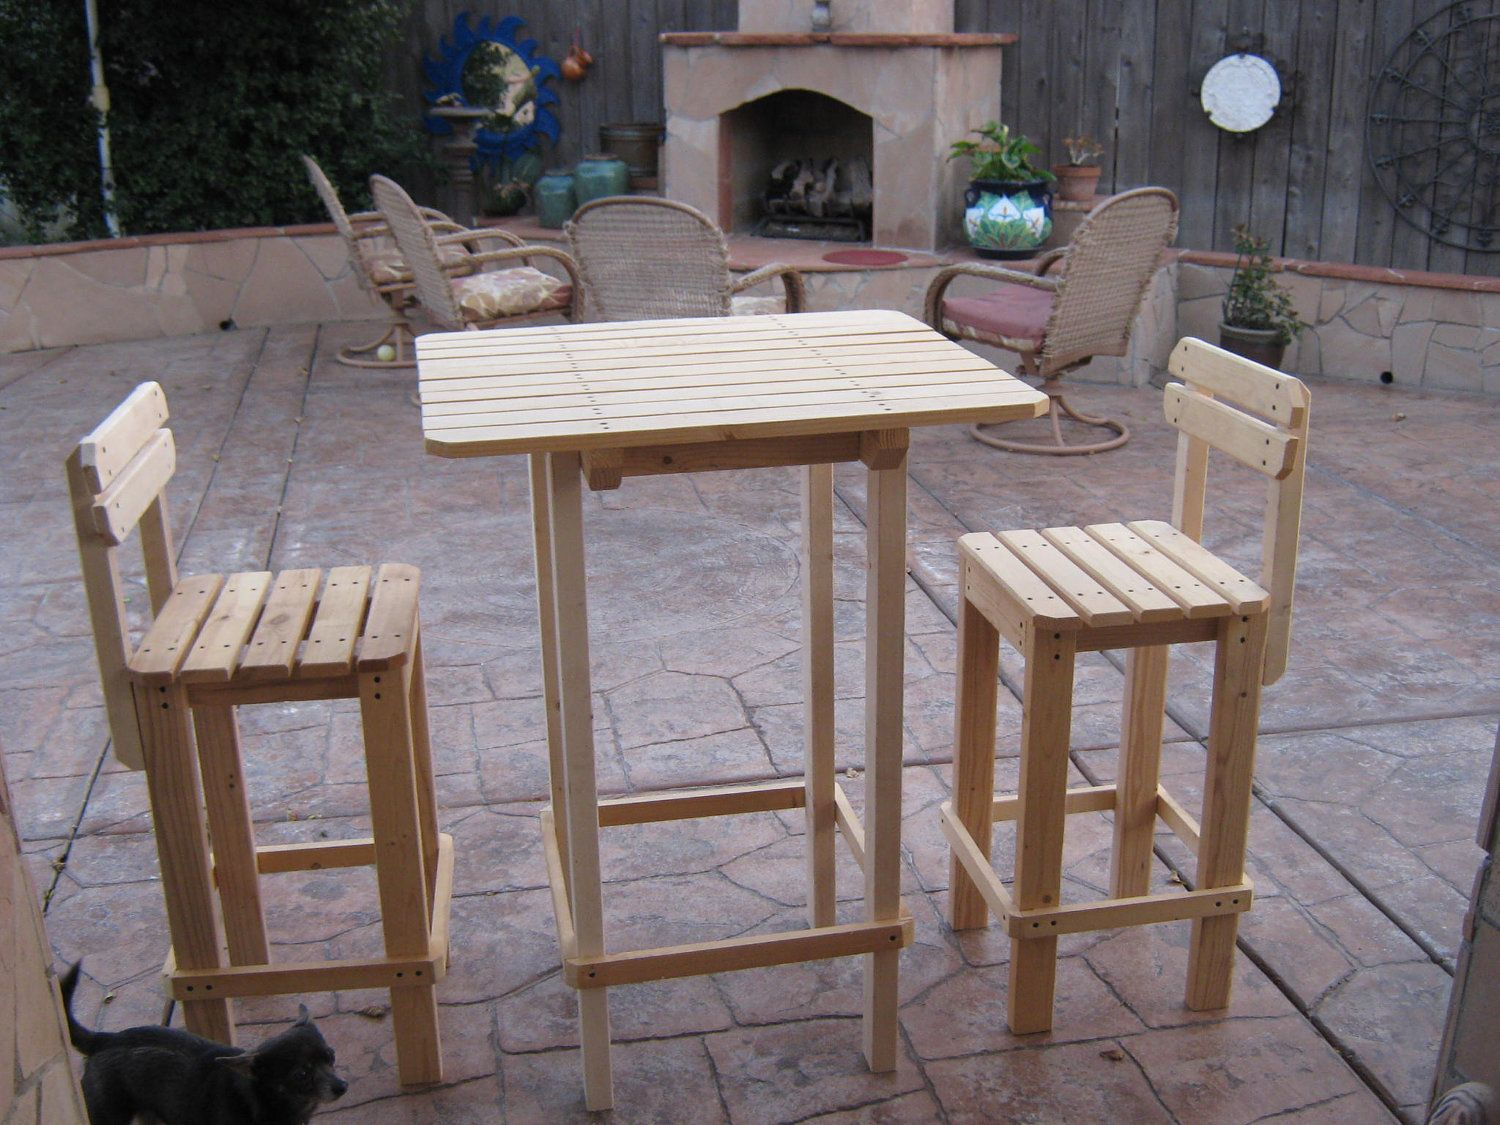 Diy Outdoor Furniture Plans For Patio Lawn Or Garden Bar Table And